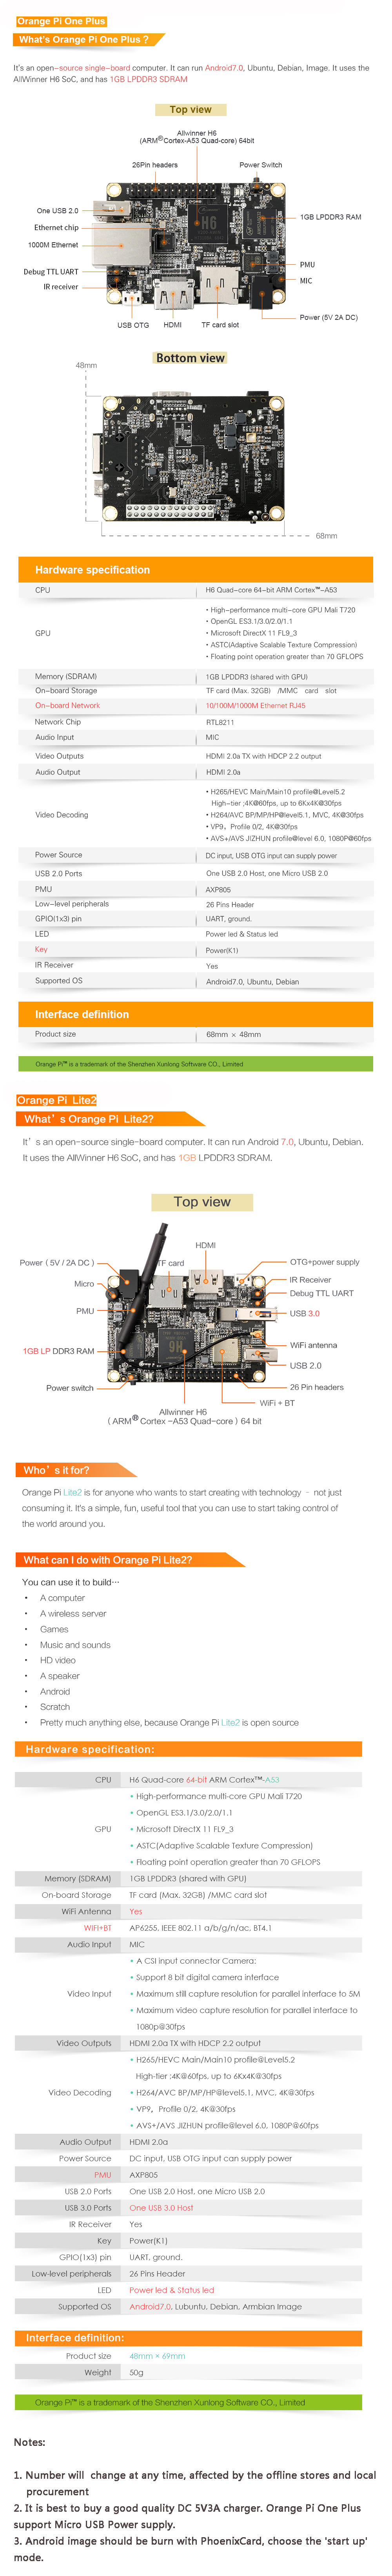 Details about Orange Pi Lite2/One Plus H6 Development Board Quad-core 64bit  1GB DDR3 AU